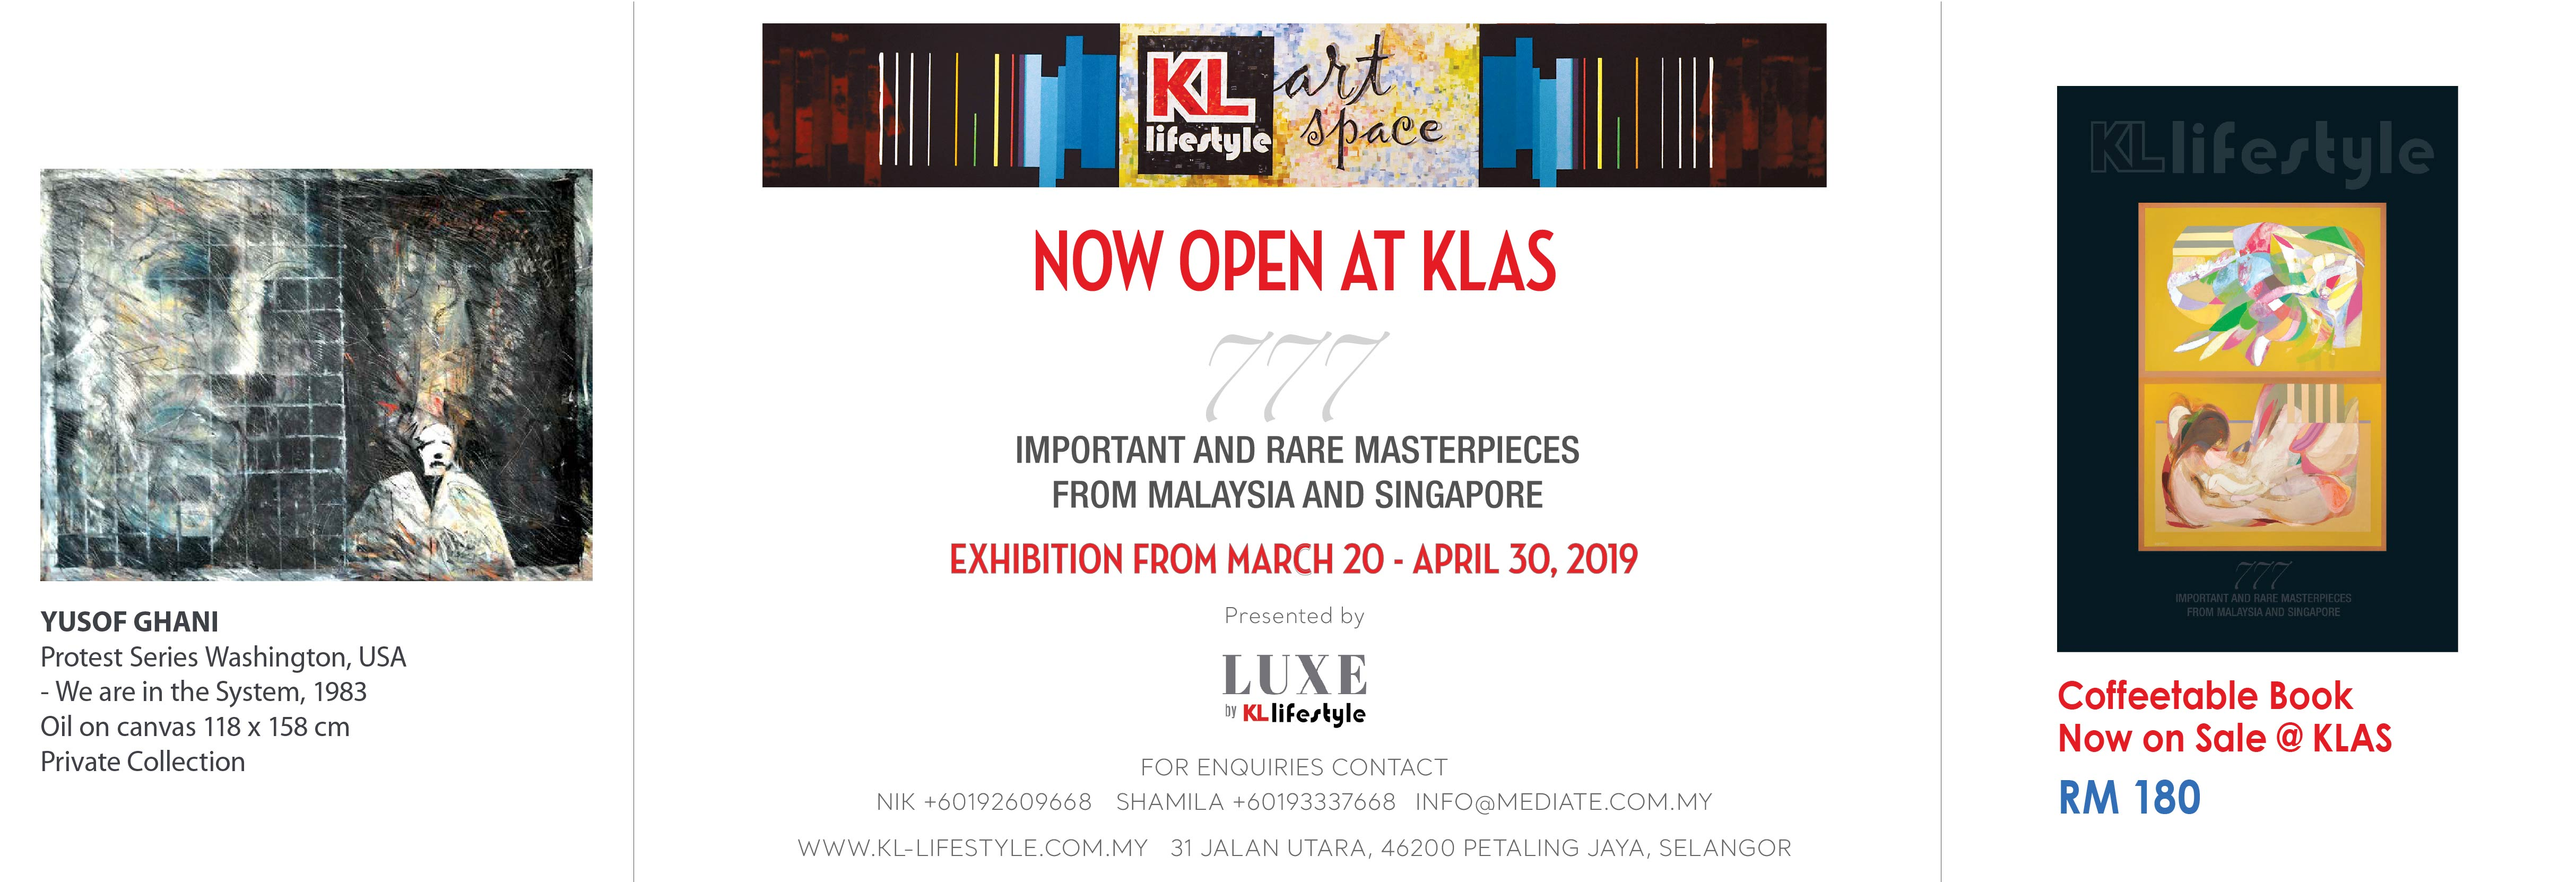 777 NOW OPEN AT KLAS COFFEE BOOK WEB BANNER-03